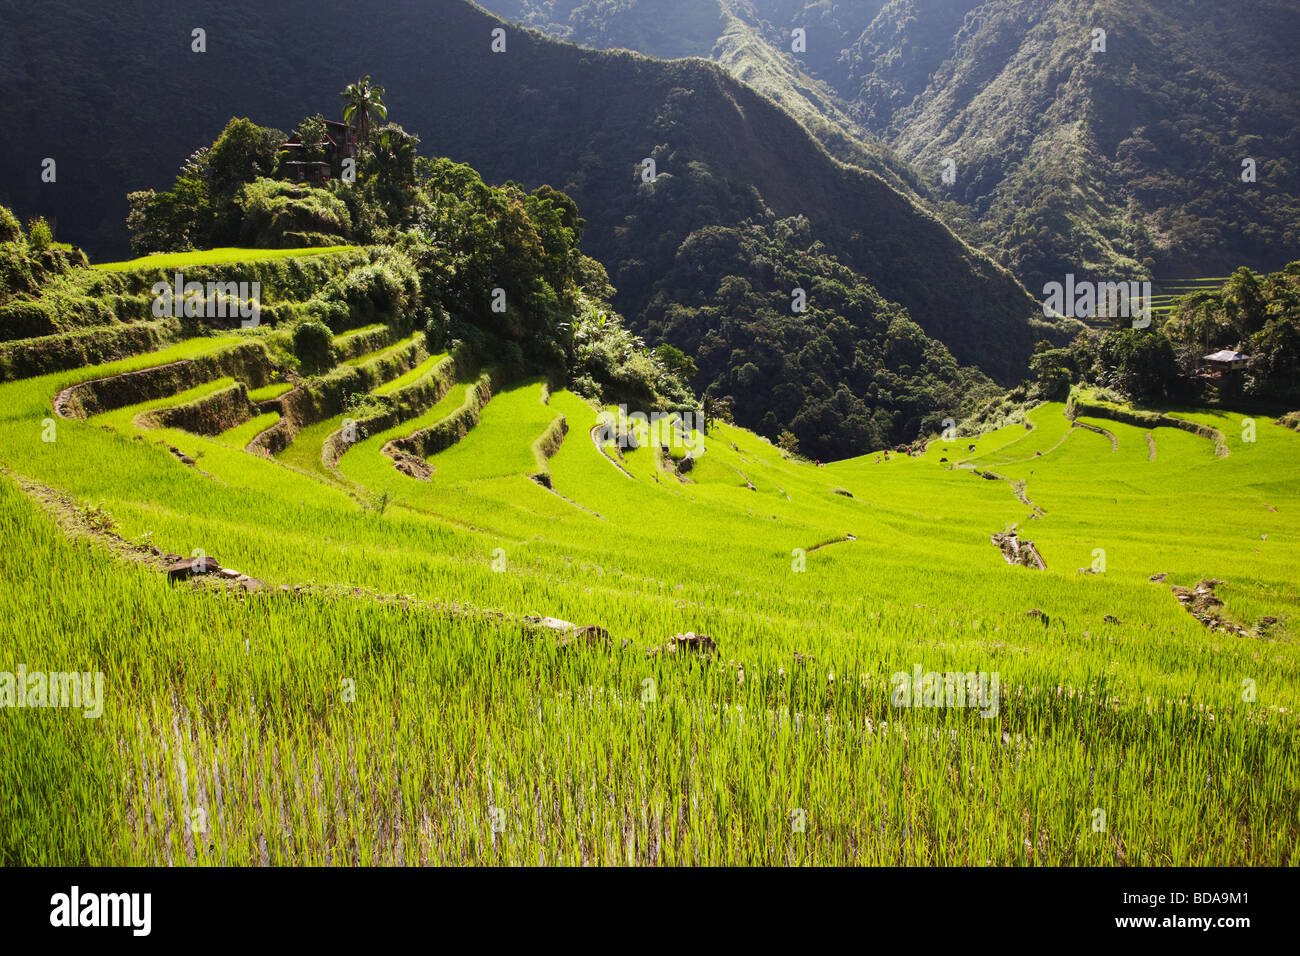 Rice terraces Batad Ifugao Province Northern Luzon Philippines - Stock Image